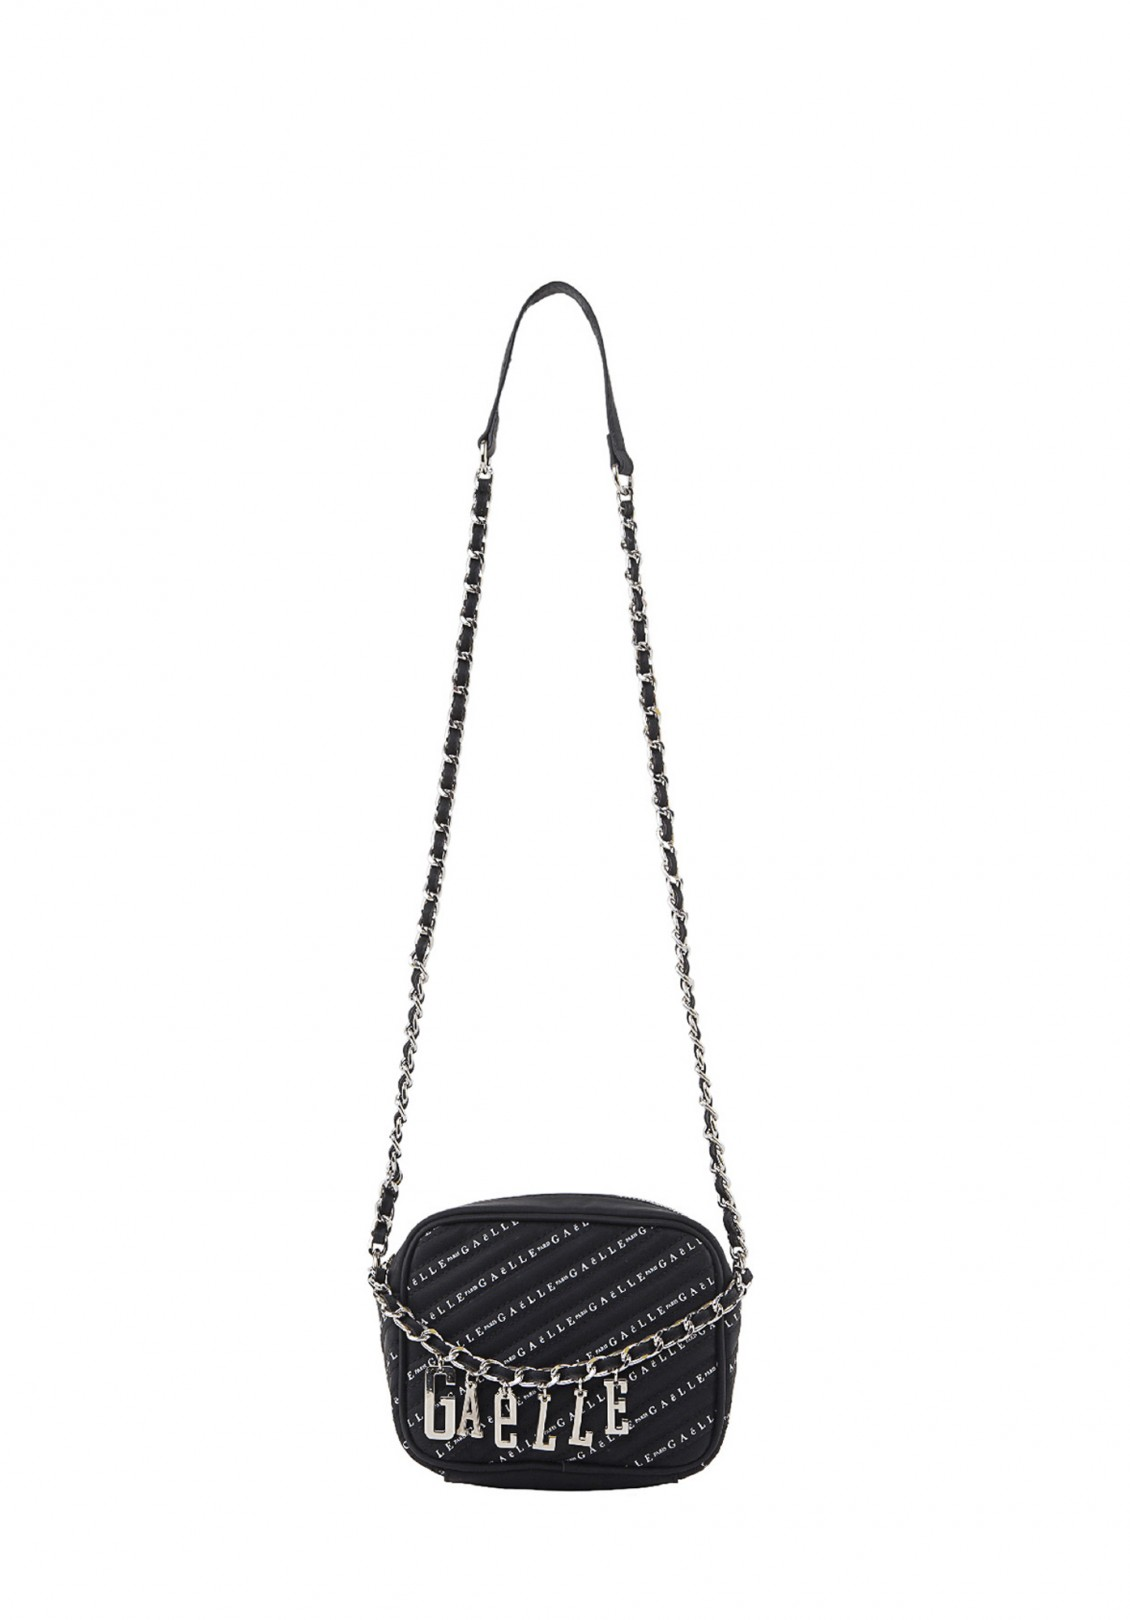 SHOULDER BAG - GBDA1051 - GAELLE PARIS